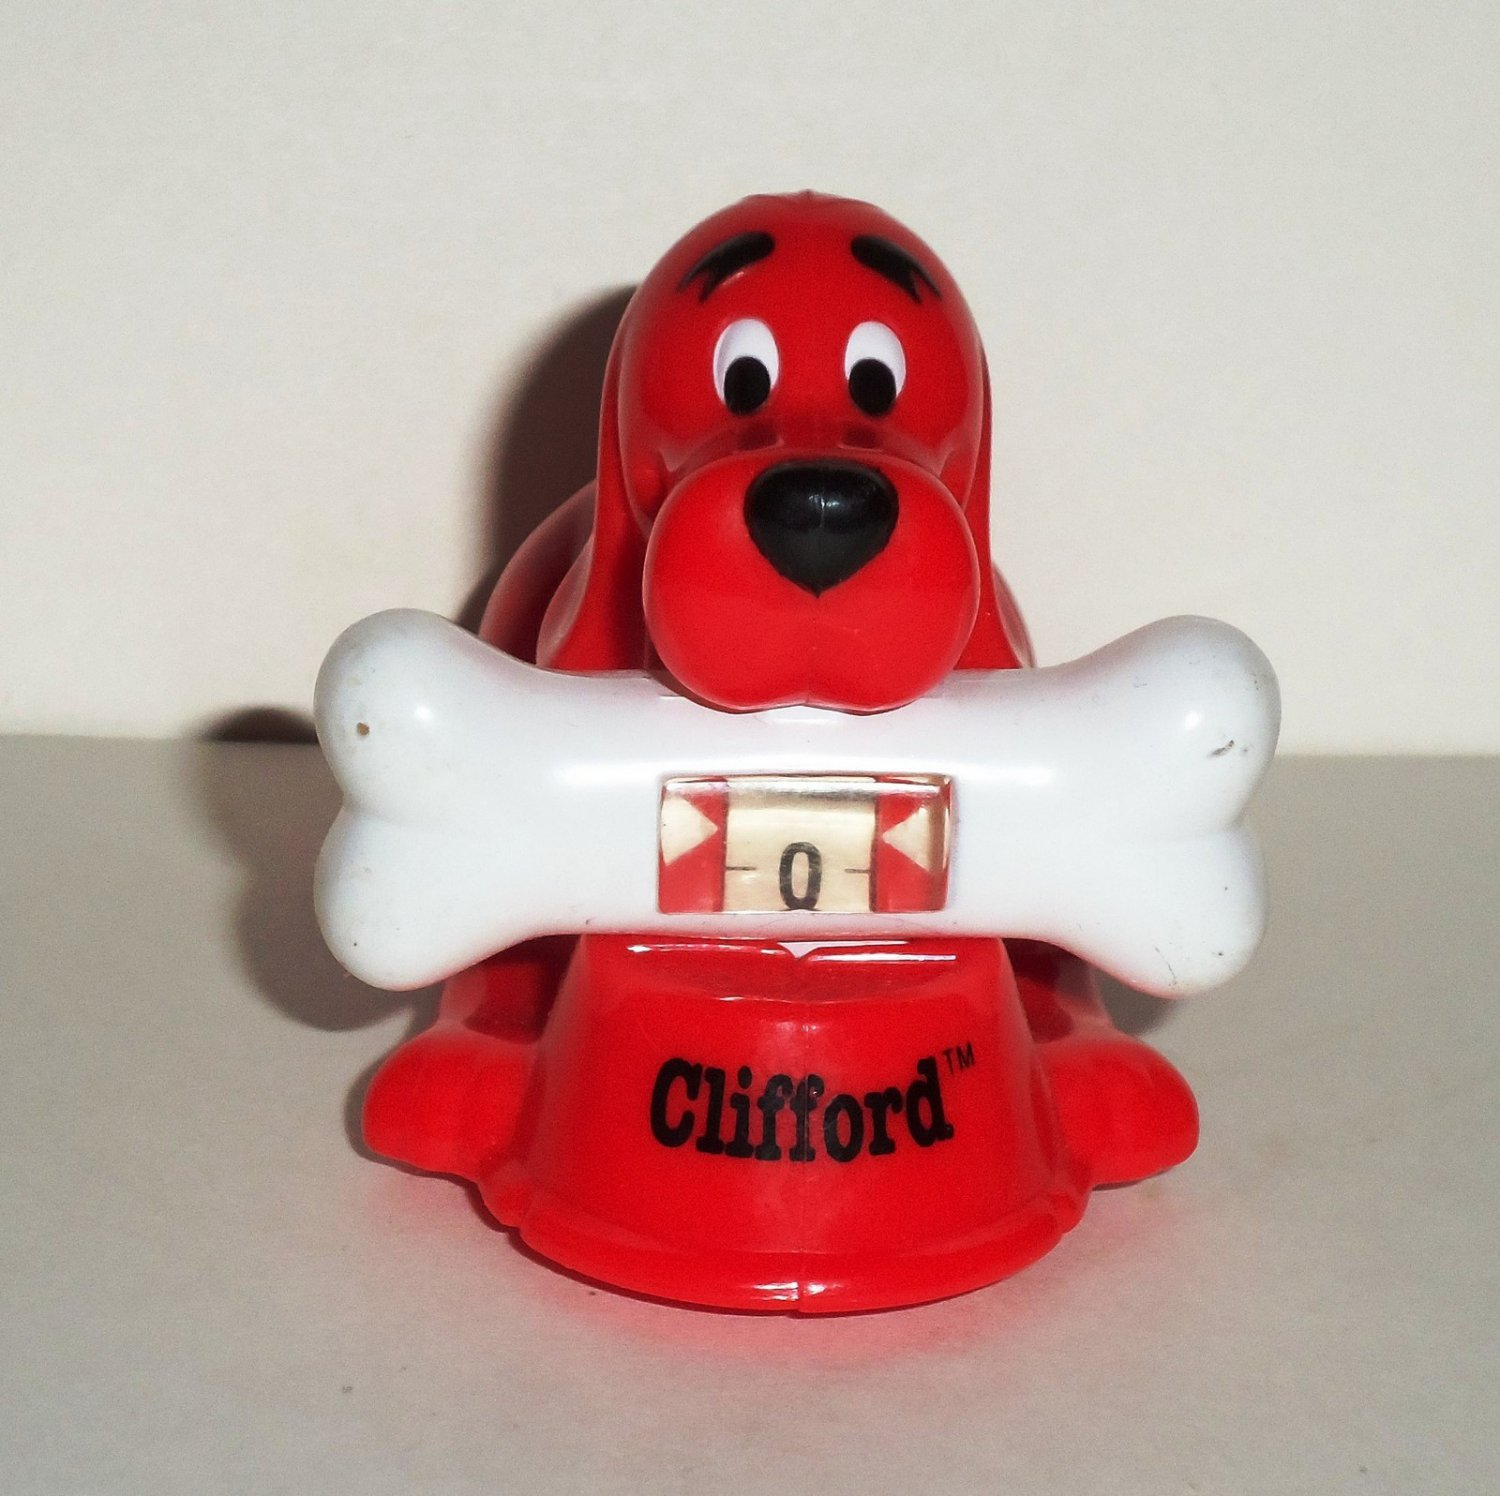 Wendy s 2002 Clifford the Big Red Dog Counter Kids Meal Toy Loose